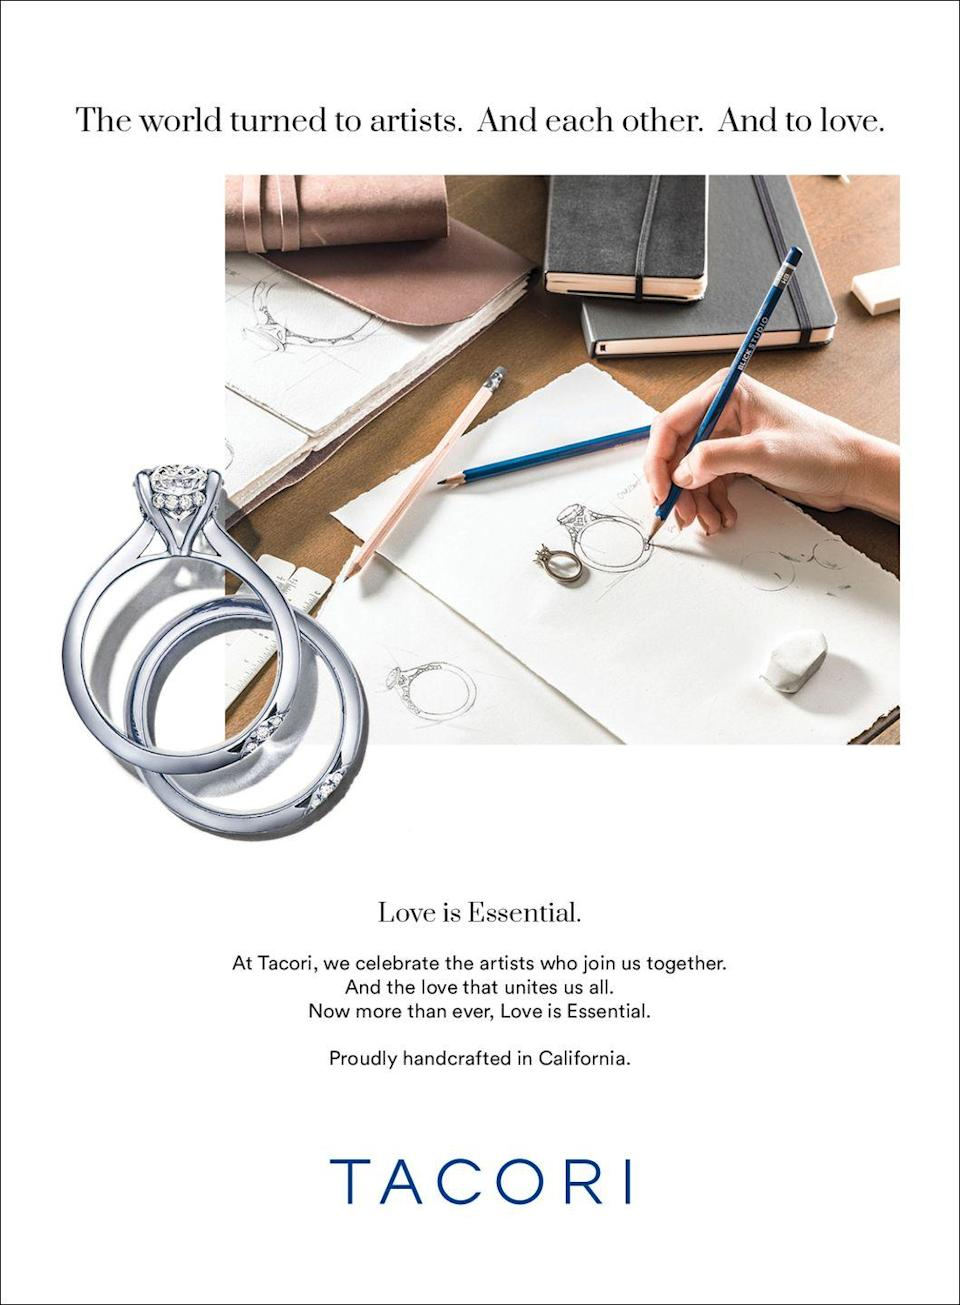 <p>The world turned to artists. And each other. And love. </p><p>Love is essential. </p><p>At Tacori, we celebrate the artists who join us together. And the love that unites us all. Now more than ever, Love is Essential. </p><p>Proudly handcrafted in California. </p>